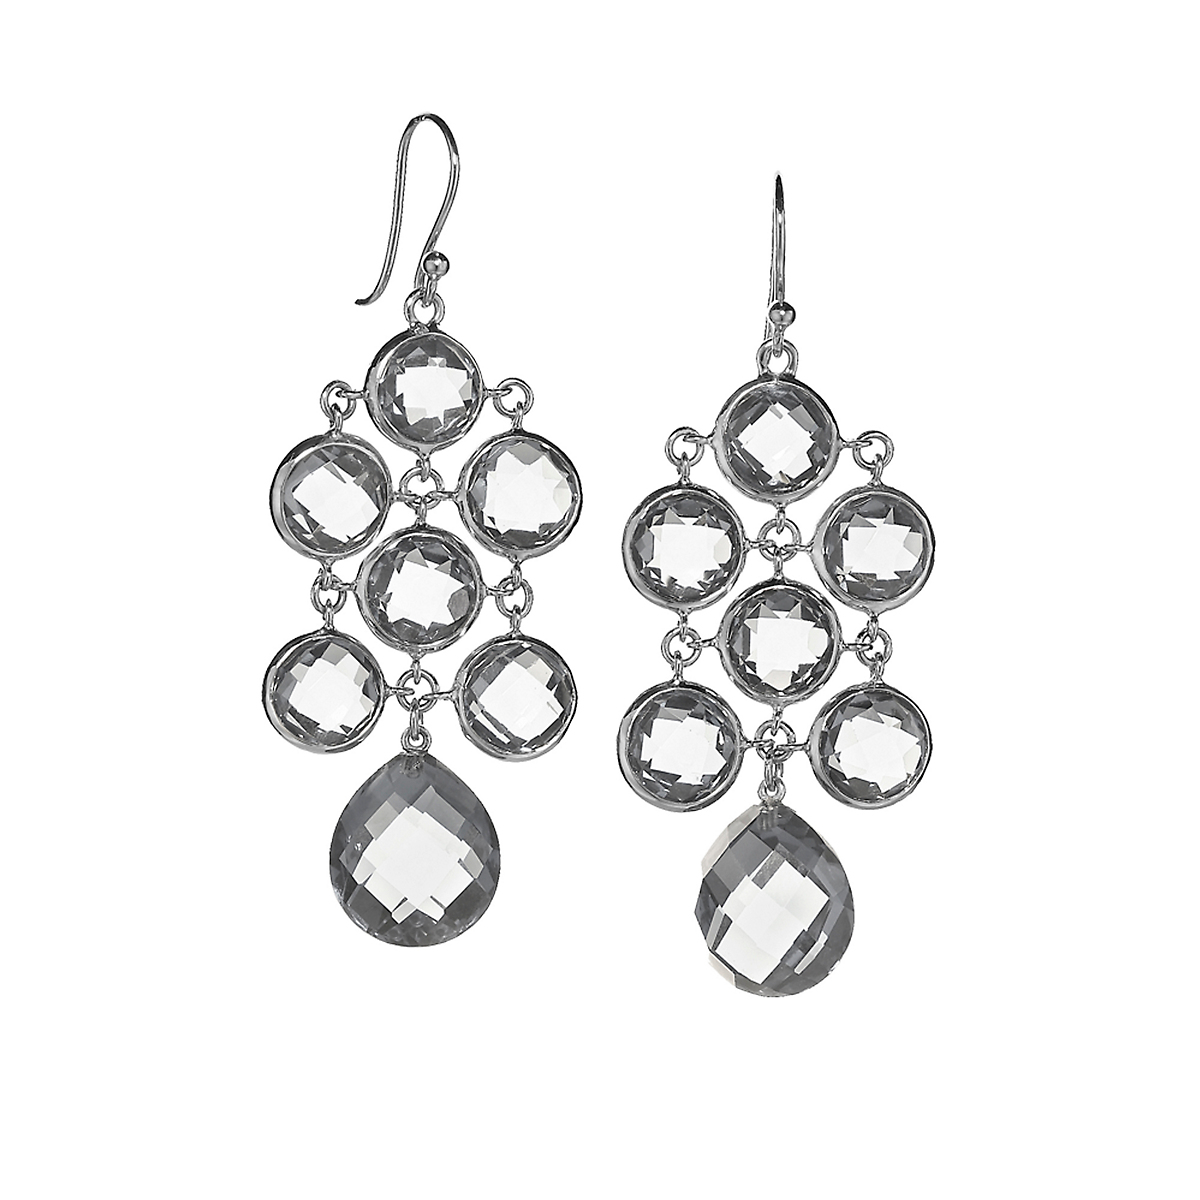 Elizabeth Showers Quartz Silver Juliette Earrings